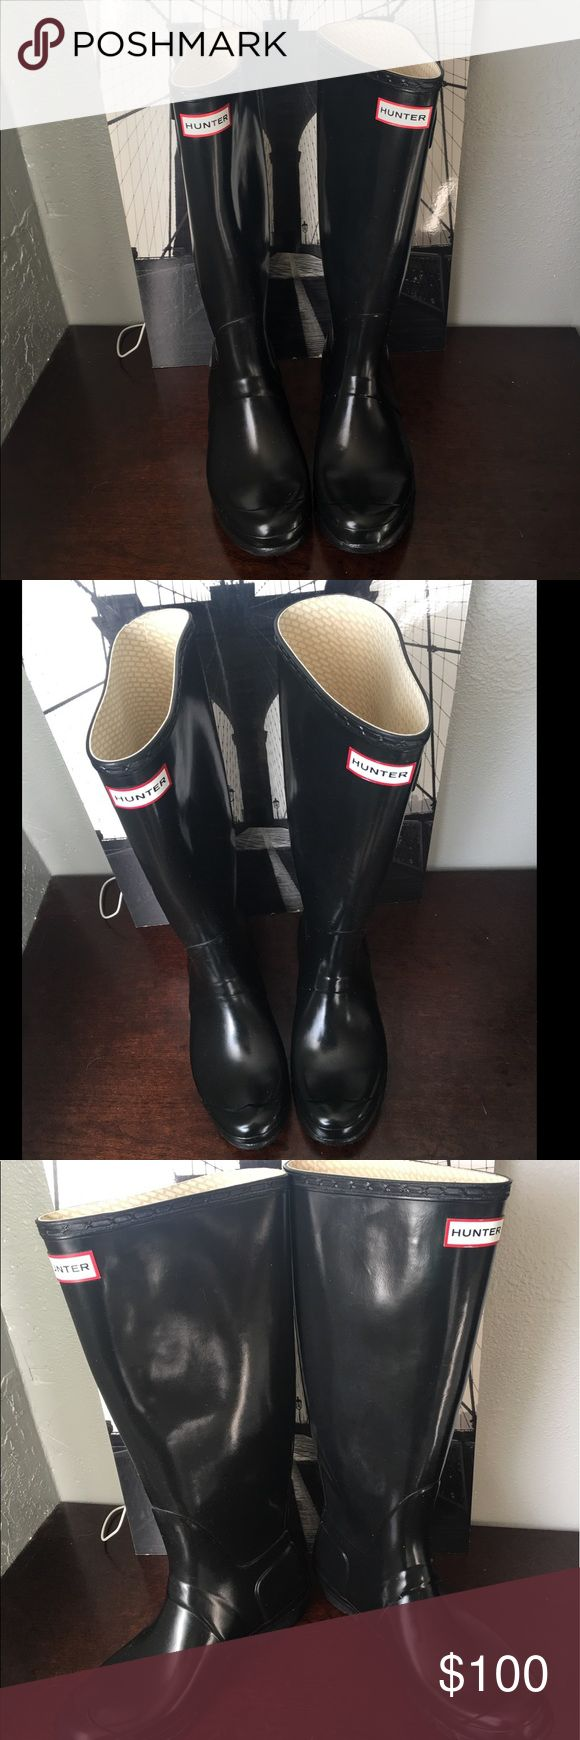 "Tour' Packable Rain Approx. heel height: 1 1/4"". Approx. boot shaft height: 15 1/2""; 16"" calf circumference. Hunter Boots Shoes Ankle Boots & Booties"